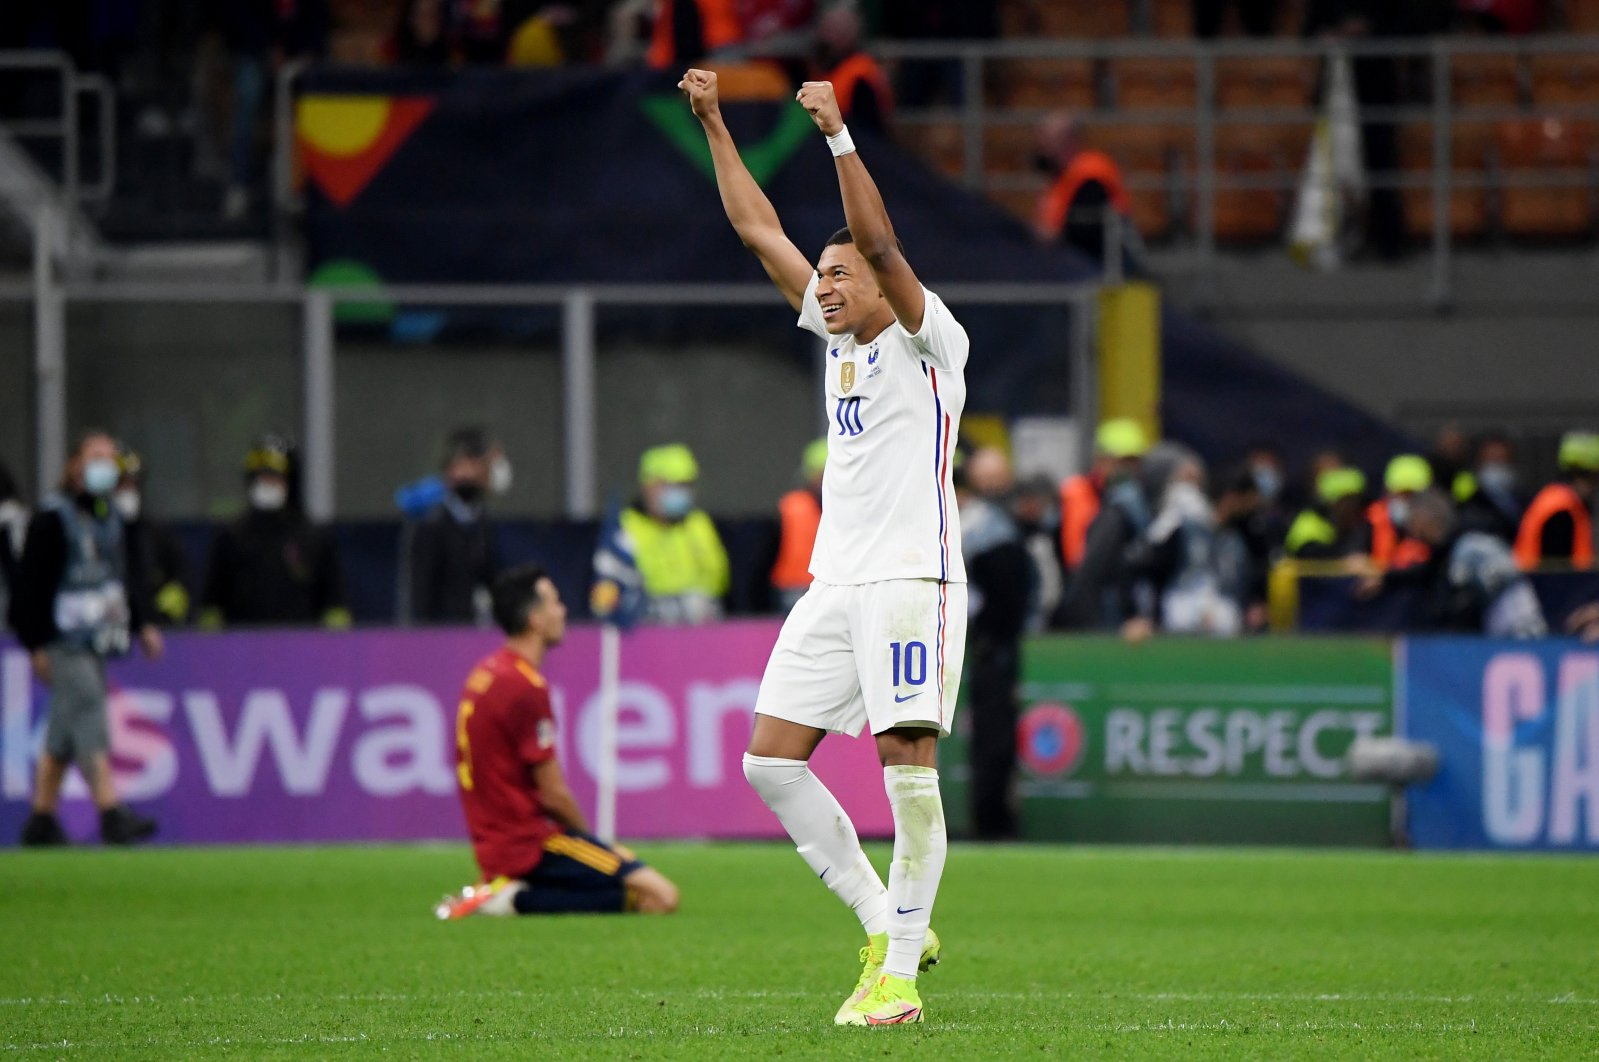 France's Kylian Mbappe celebrates after winning the Nations League final, Oct. 10, 2021. (Reuters Photo)